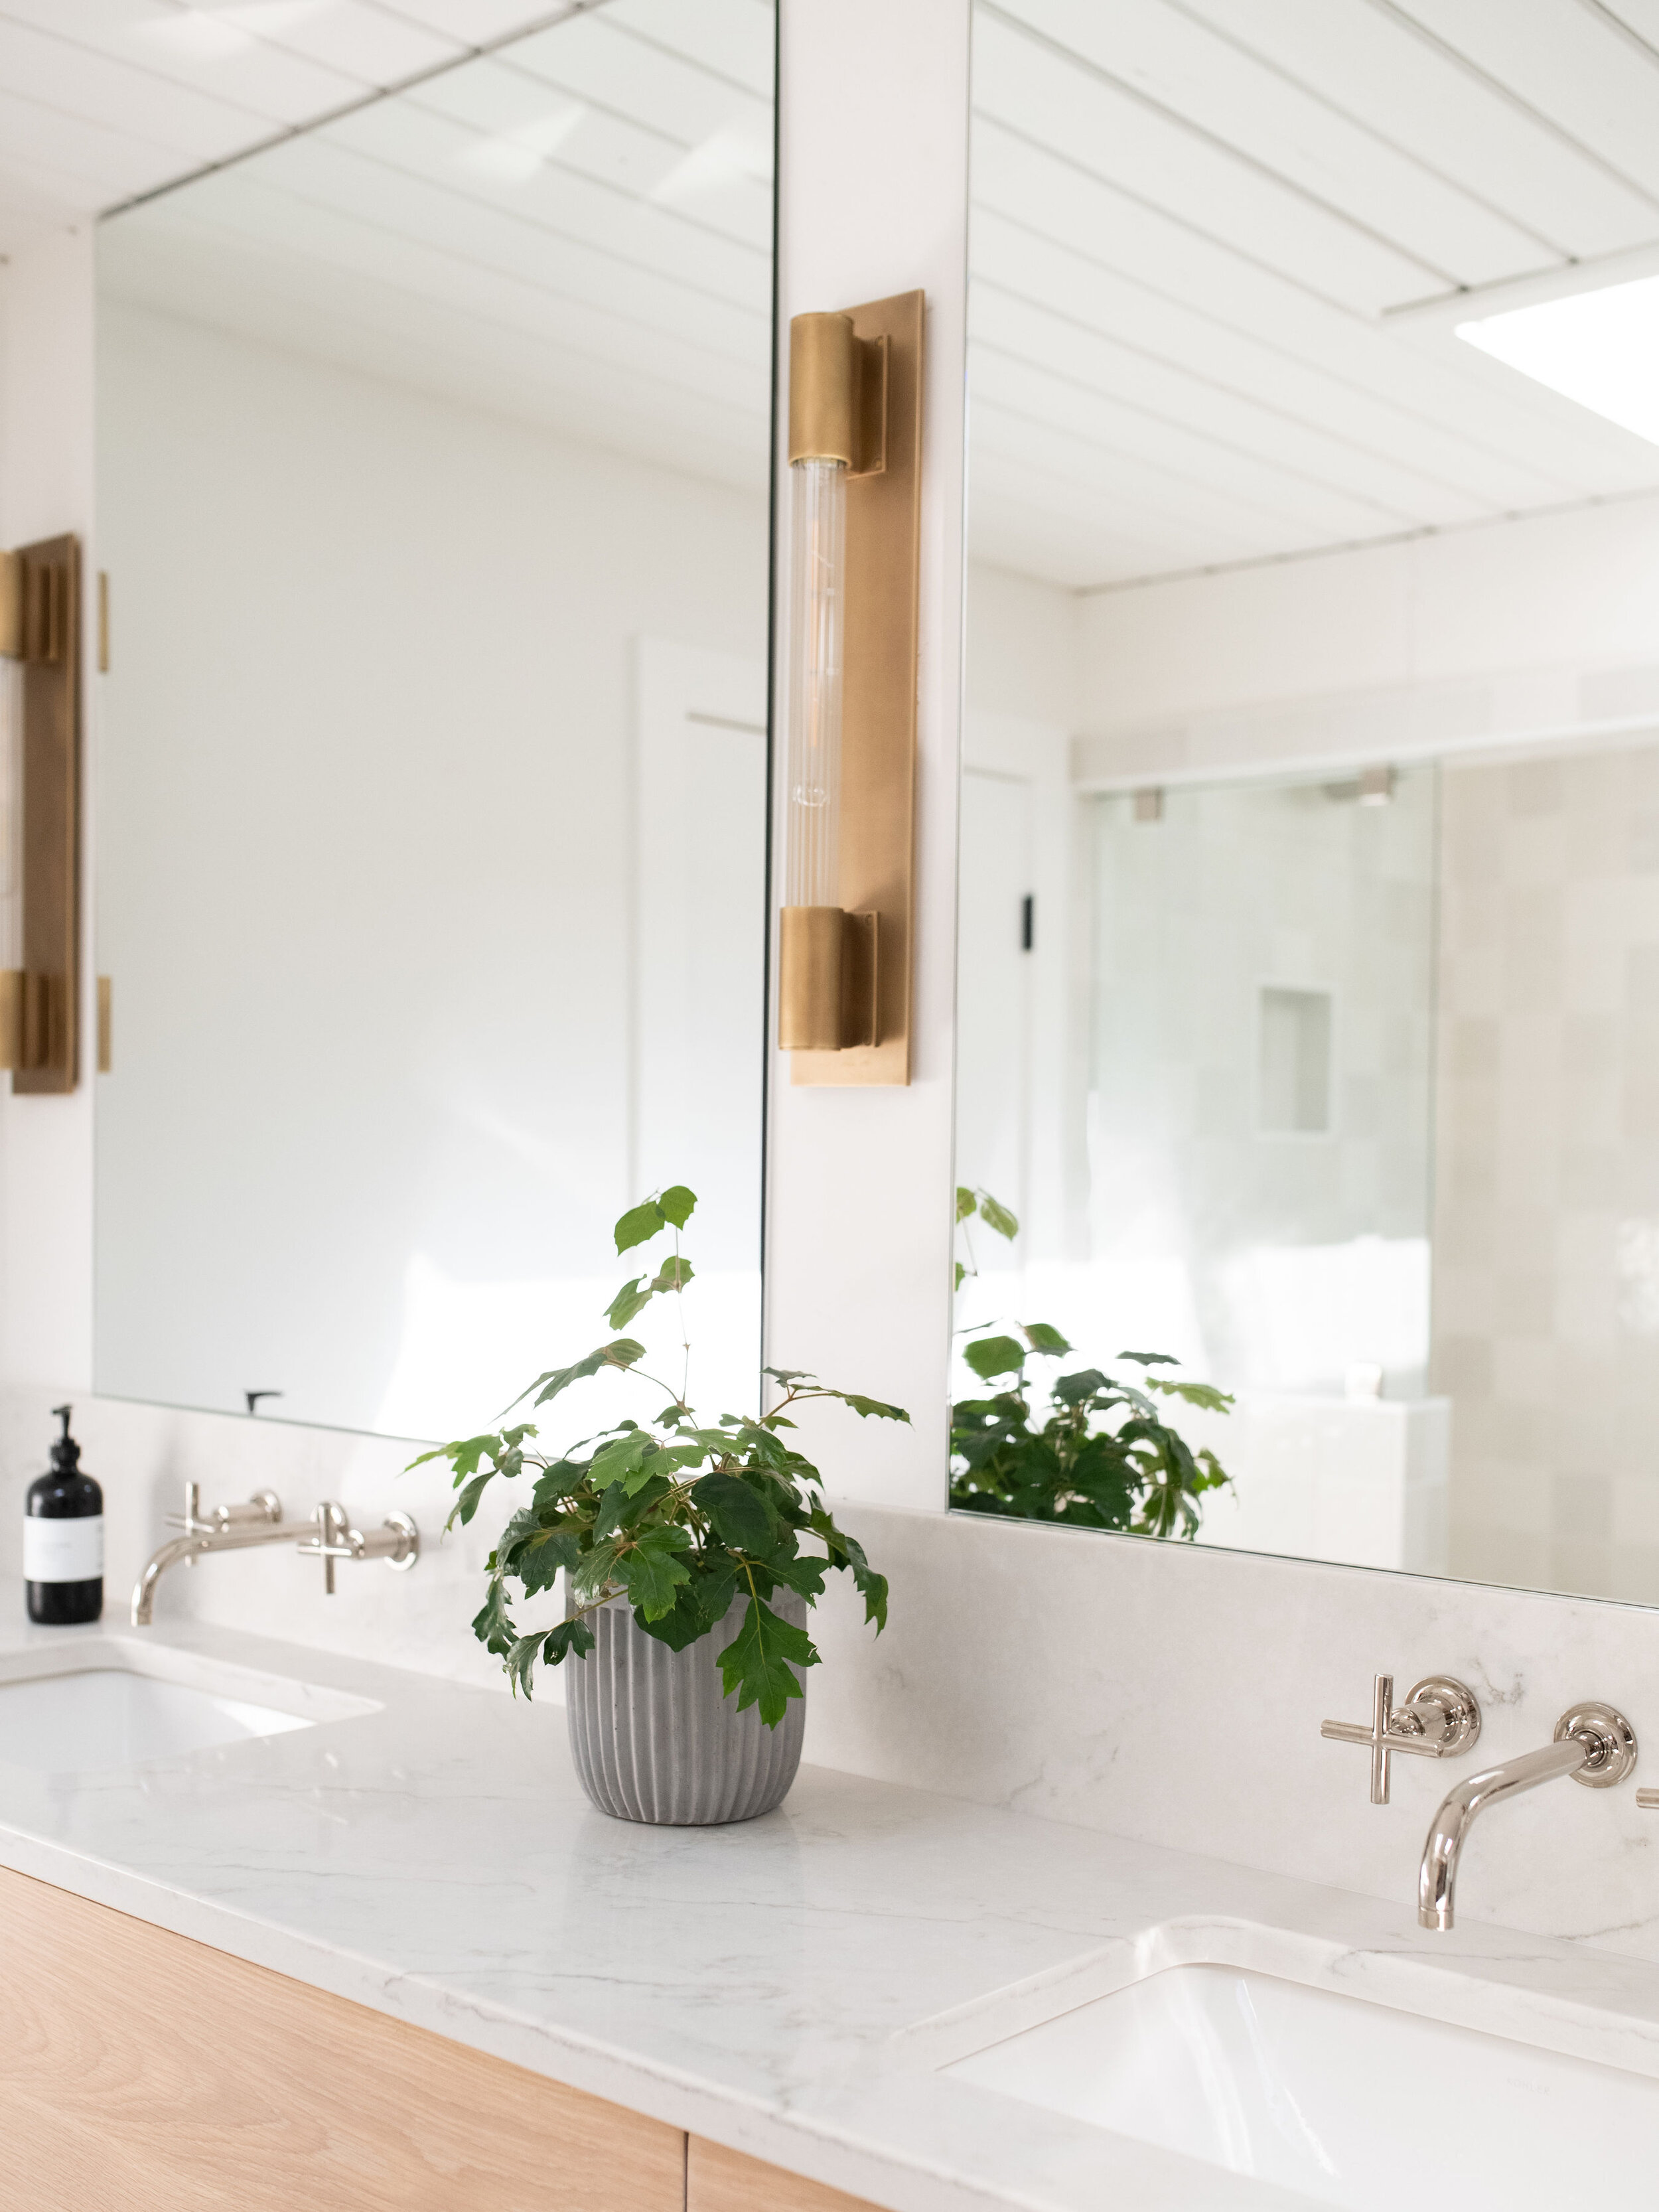 These eye-catching wall mounted faucets are modern, sleek, and the perfect accent to the brassy sconces above